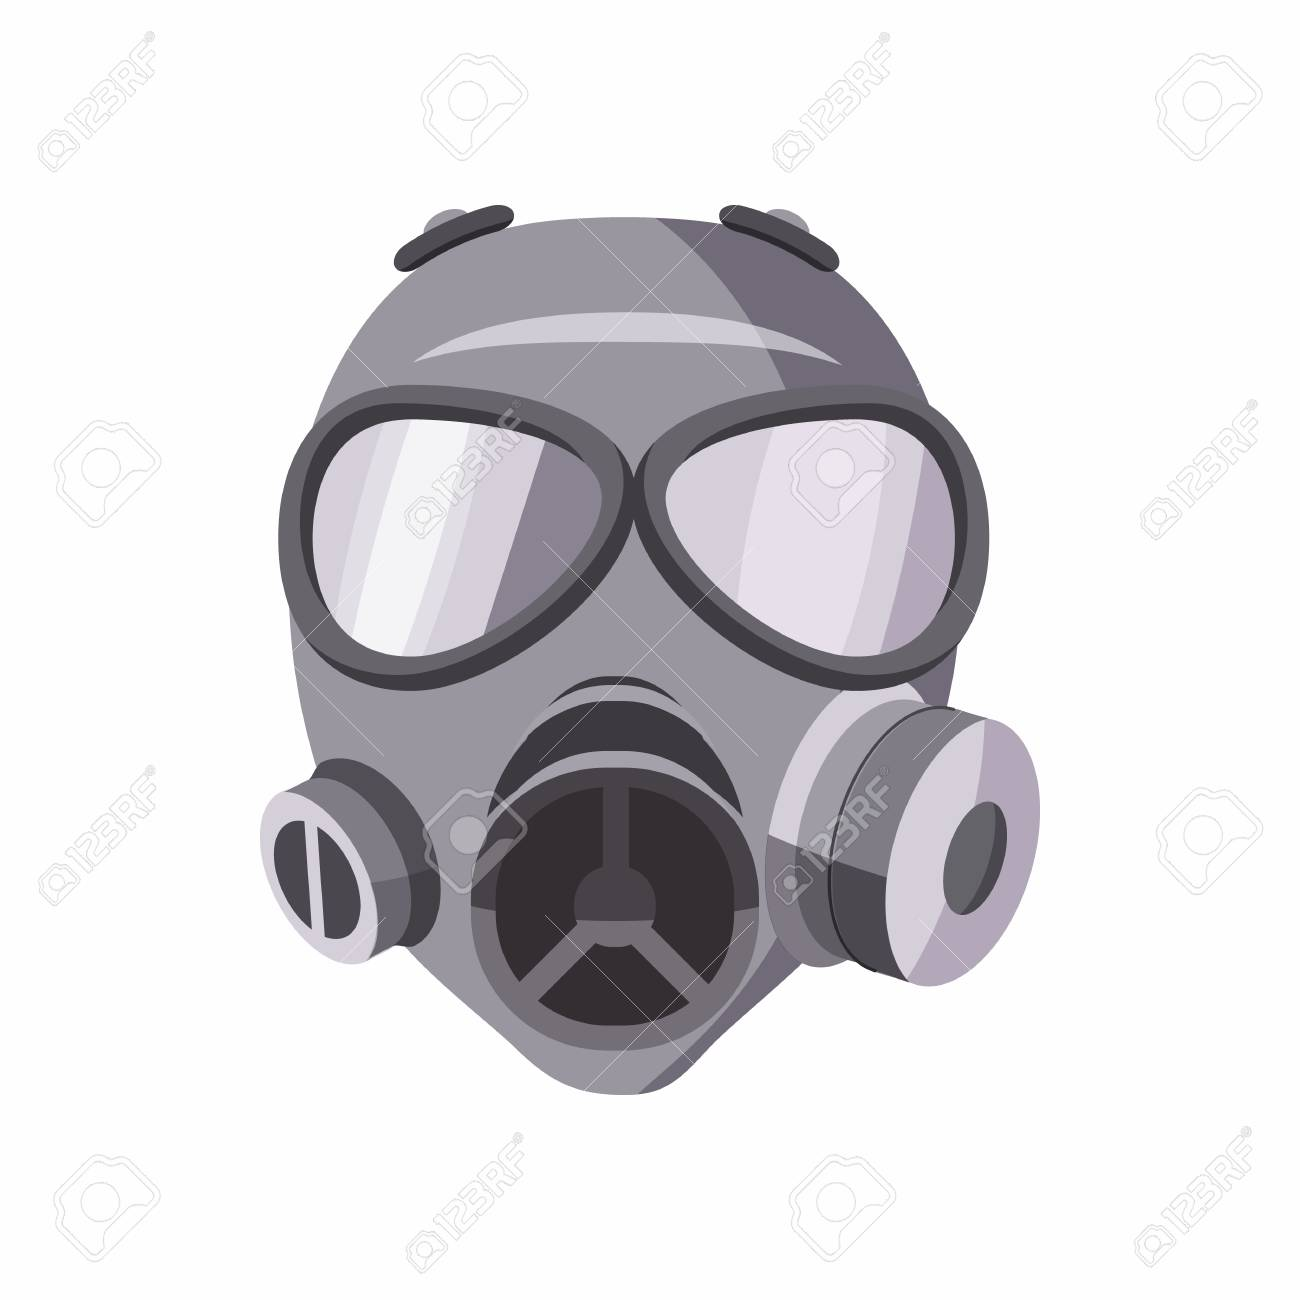 gas mask icon in cartoon style isolated on white background rh 123rf com gas mask cartoon girl gas mask cartoon girl